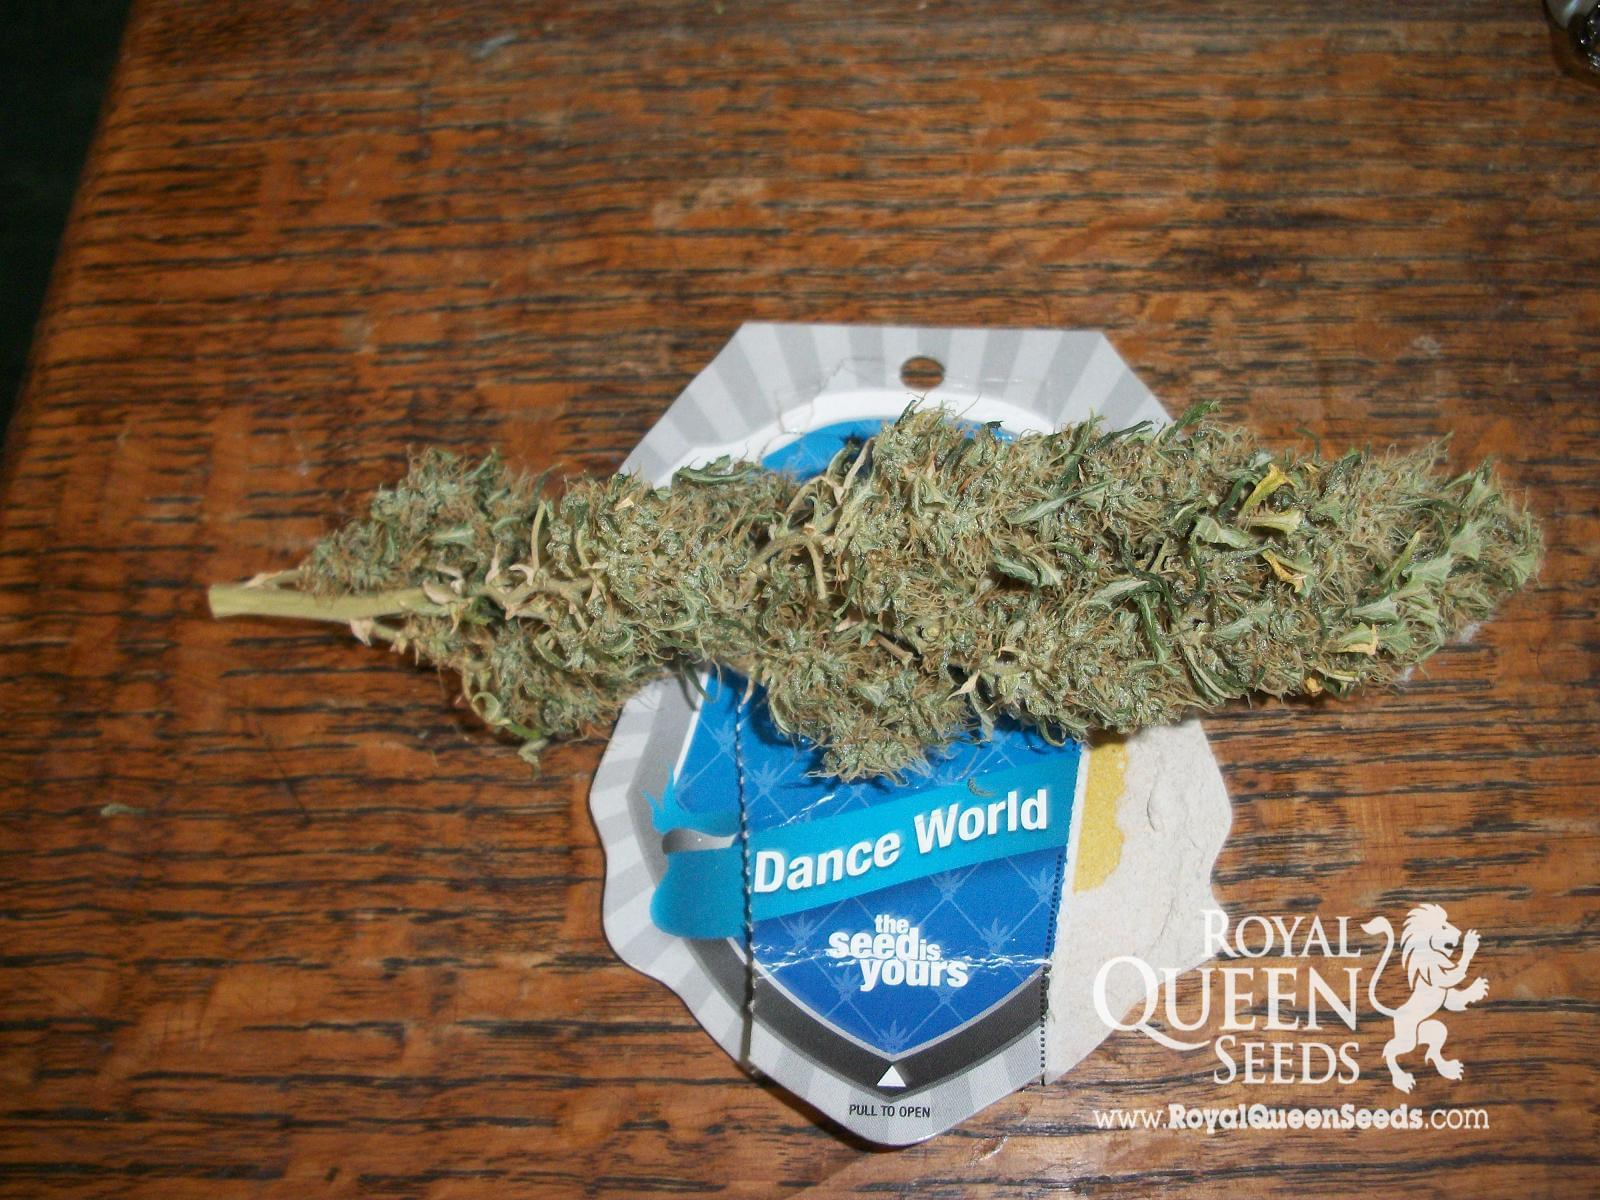 Dance World CBD Cannabissamen